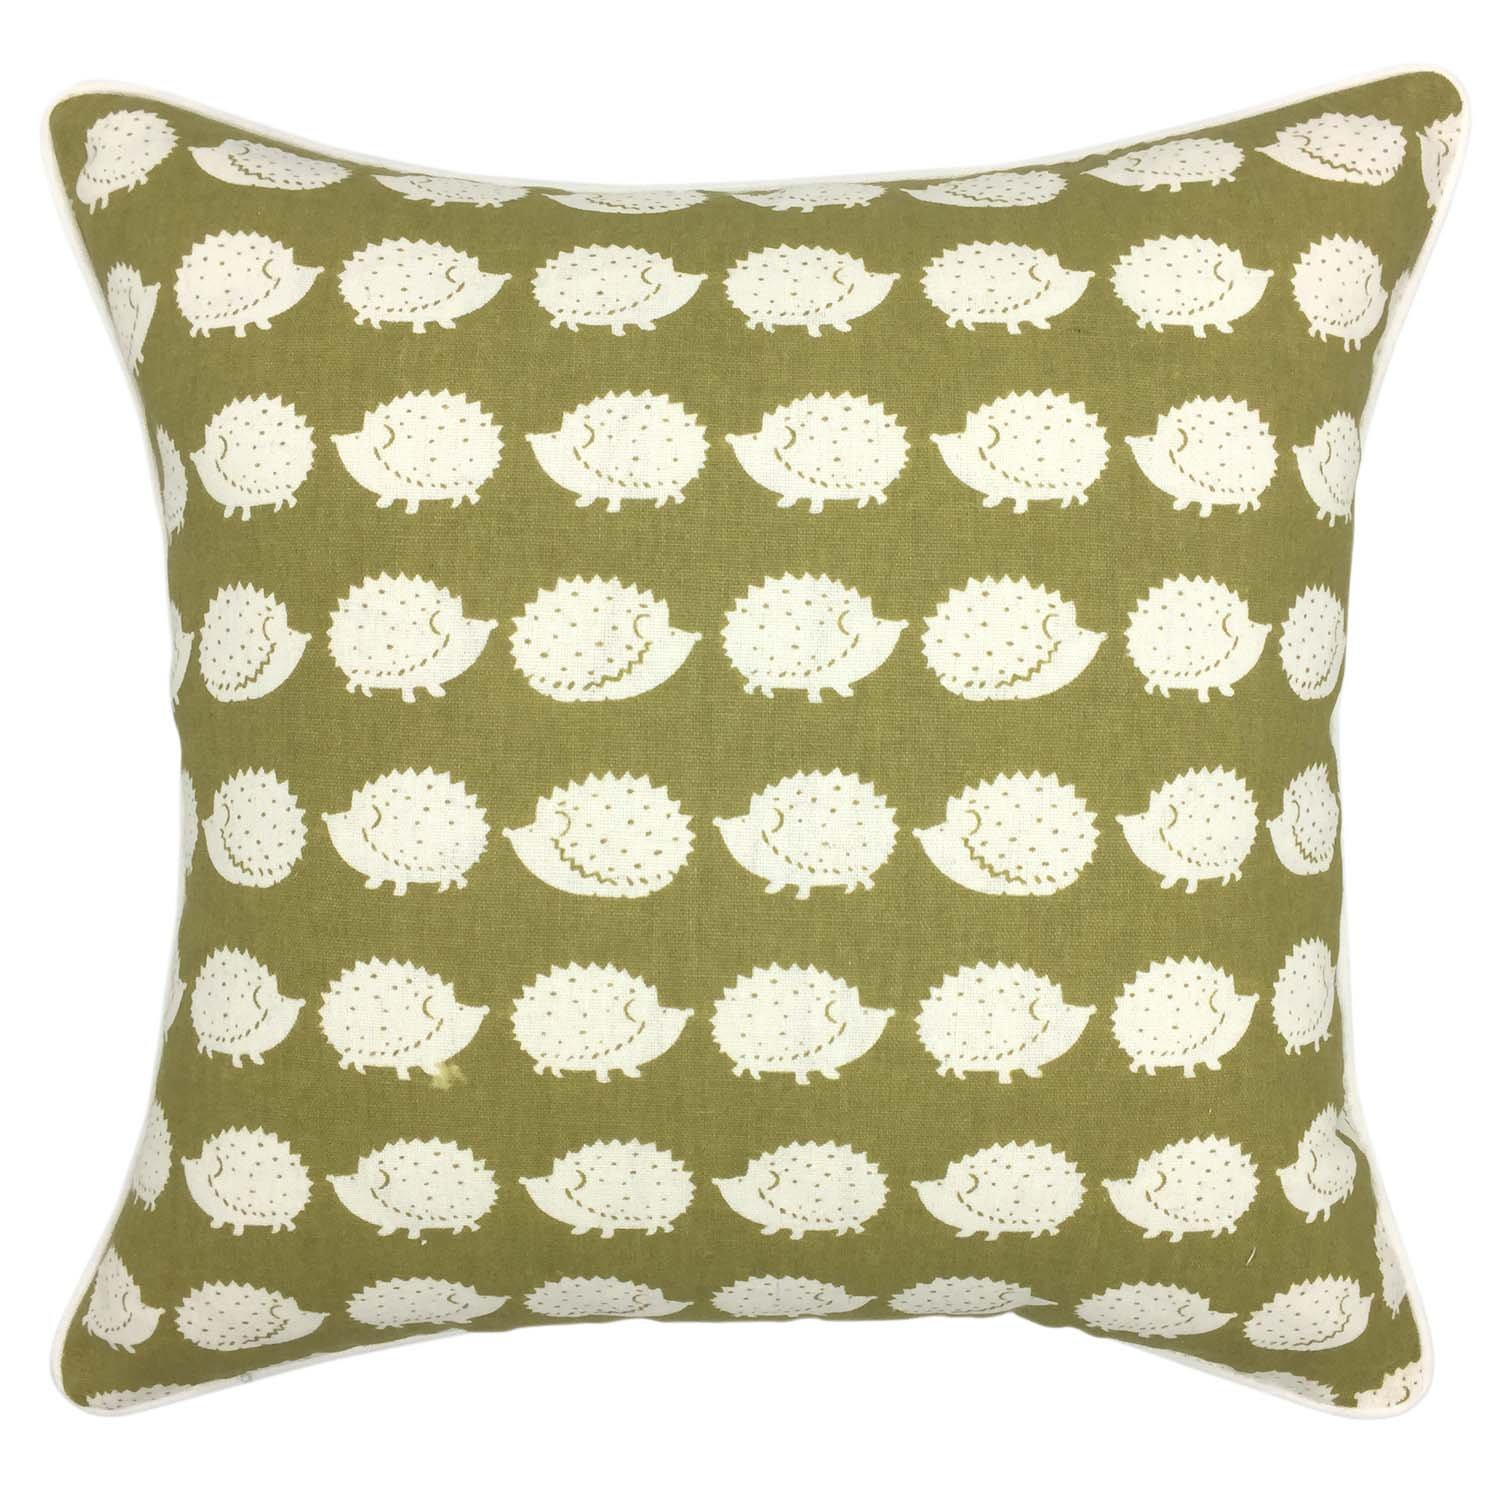 YOUR SMILE Cute animal Cotton Linen Square Decorative Throw Pillow Case Cushion Cover 18x18 Inch (Green / Hedgehog)